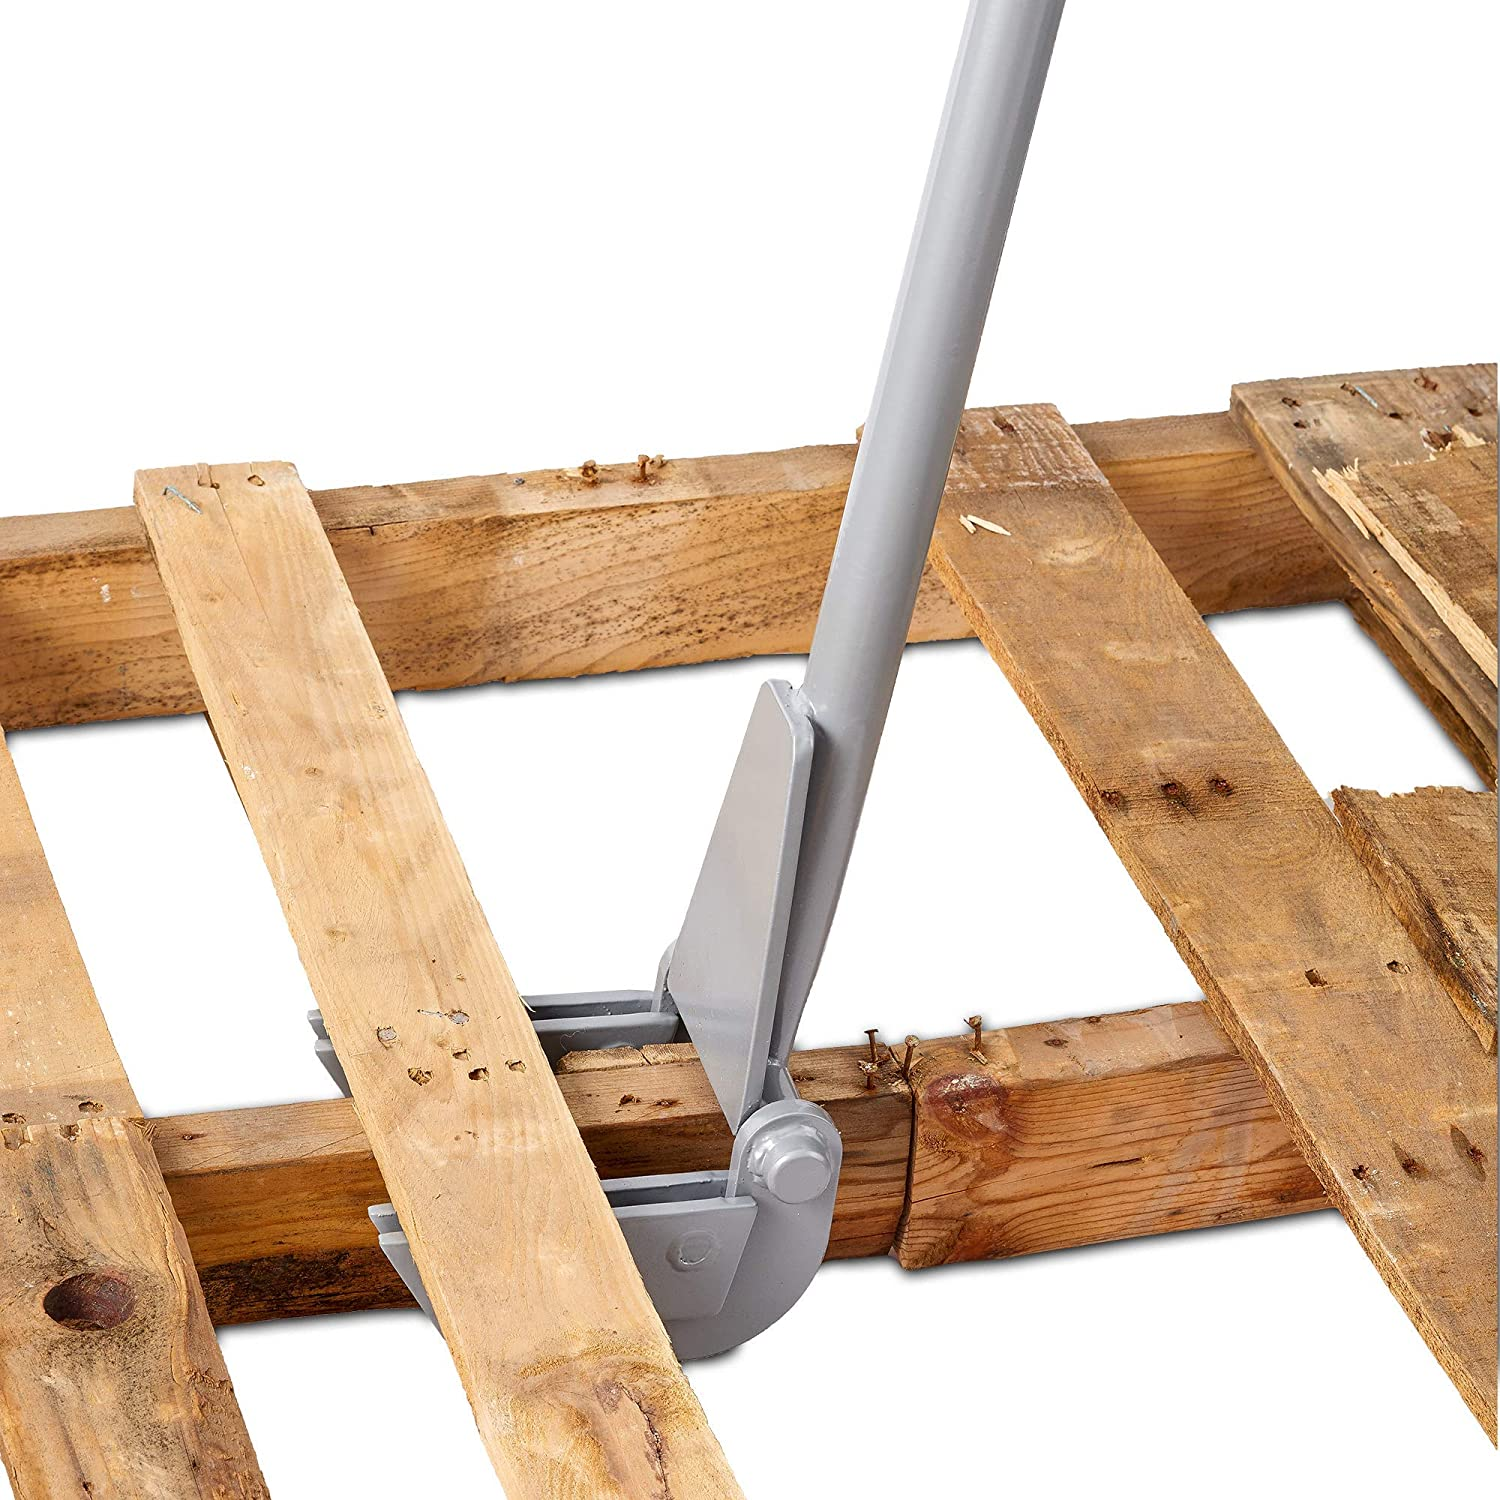 46 Steel Handle Pallet Buster Deluxe with Handle Best Wrecking Bar for Pallet Furniture and Reclaiming Boards Grey Molomax